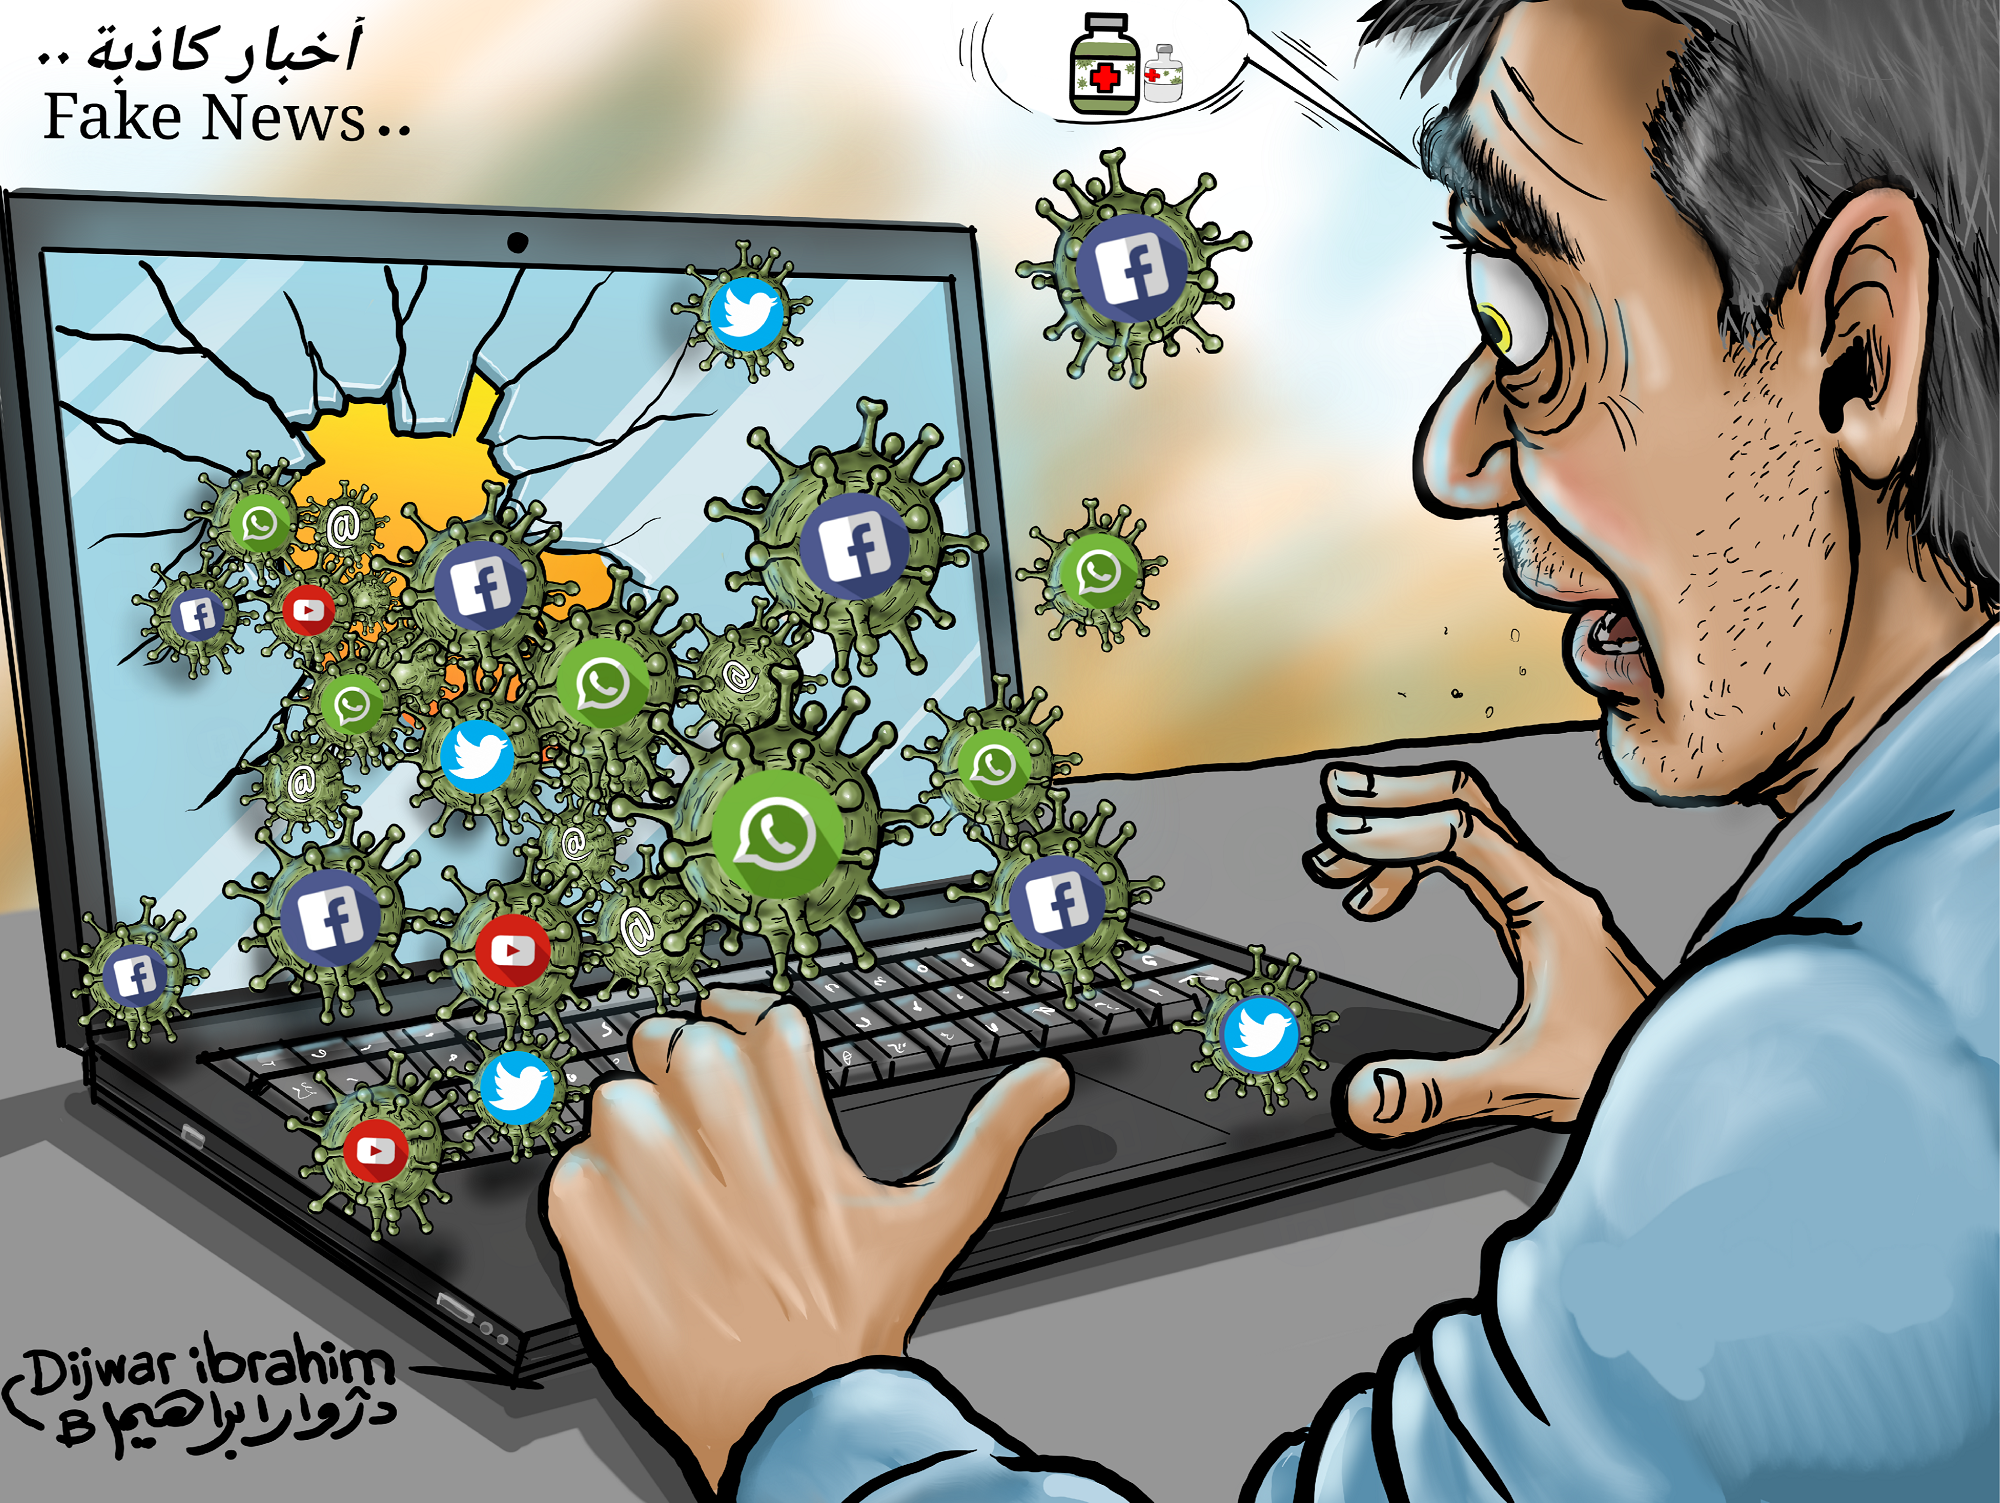 Cartoon image of a man on his laptop, afraid by all the different news announcements and fear induced by the pandemic